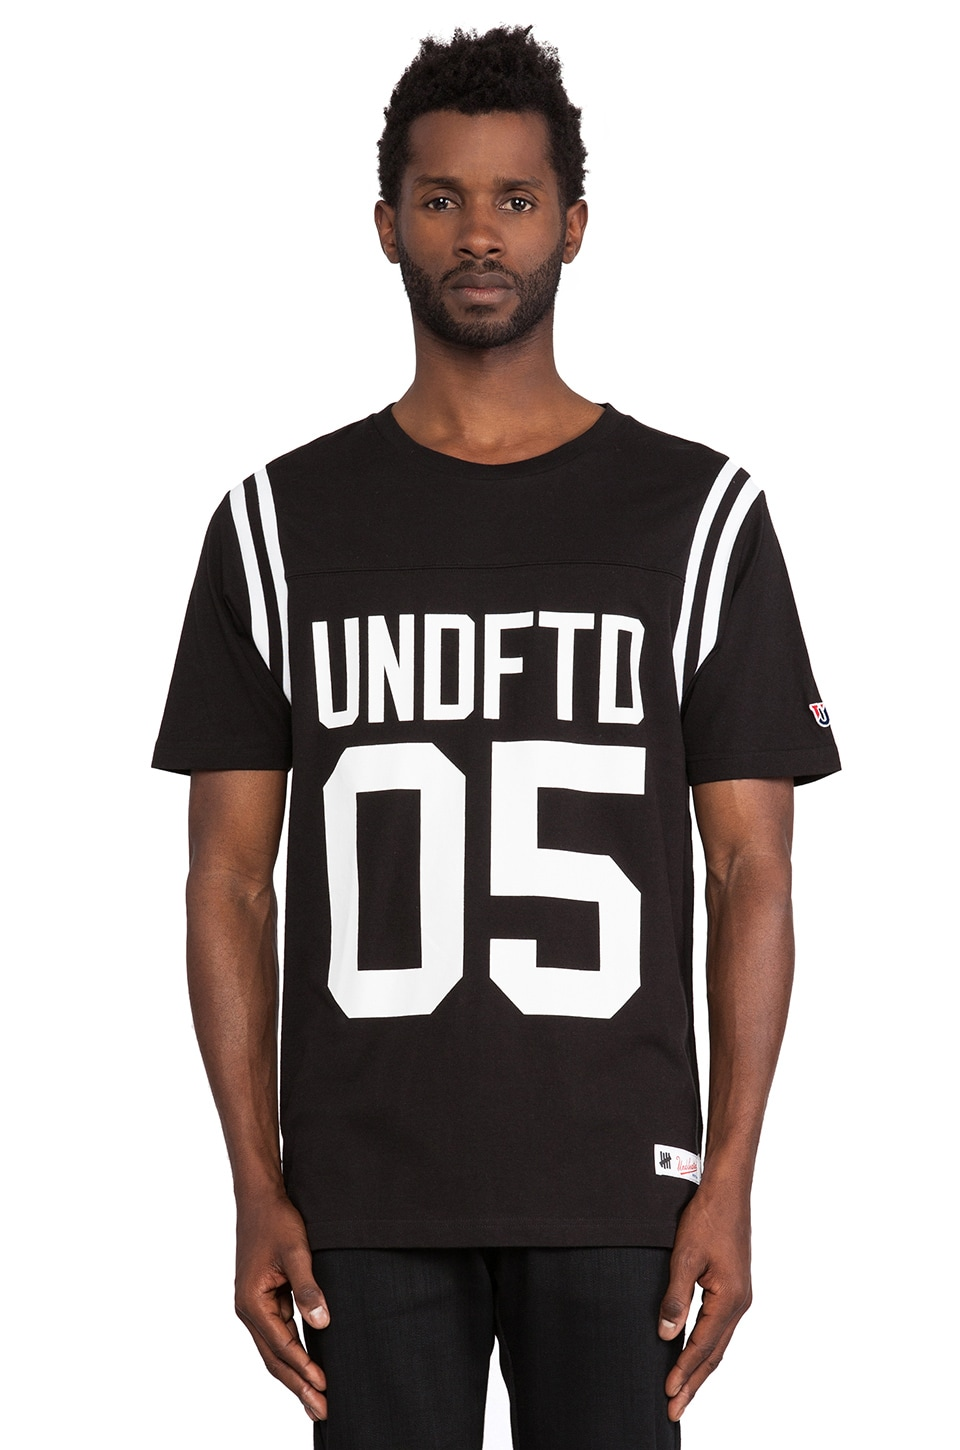 Undefeated Gridiron Tee in Black